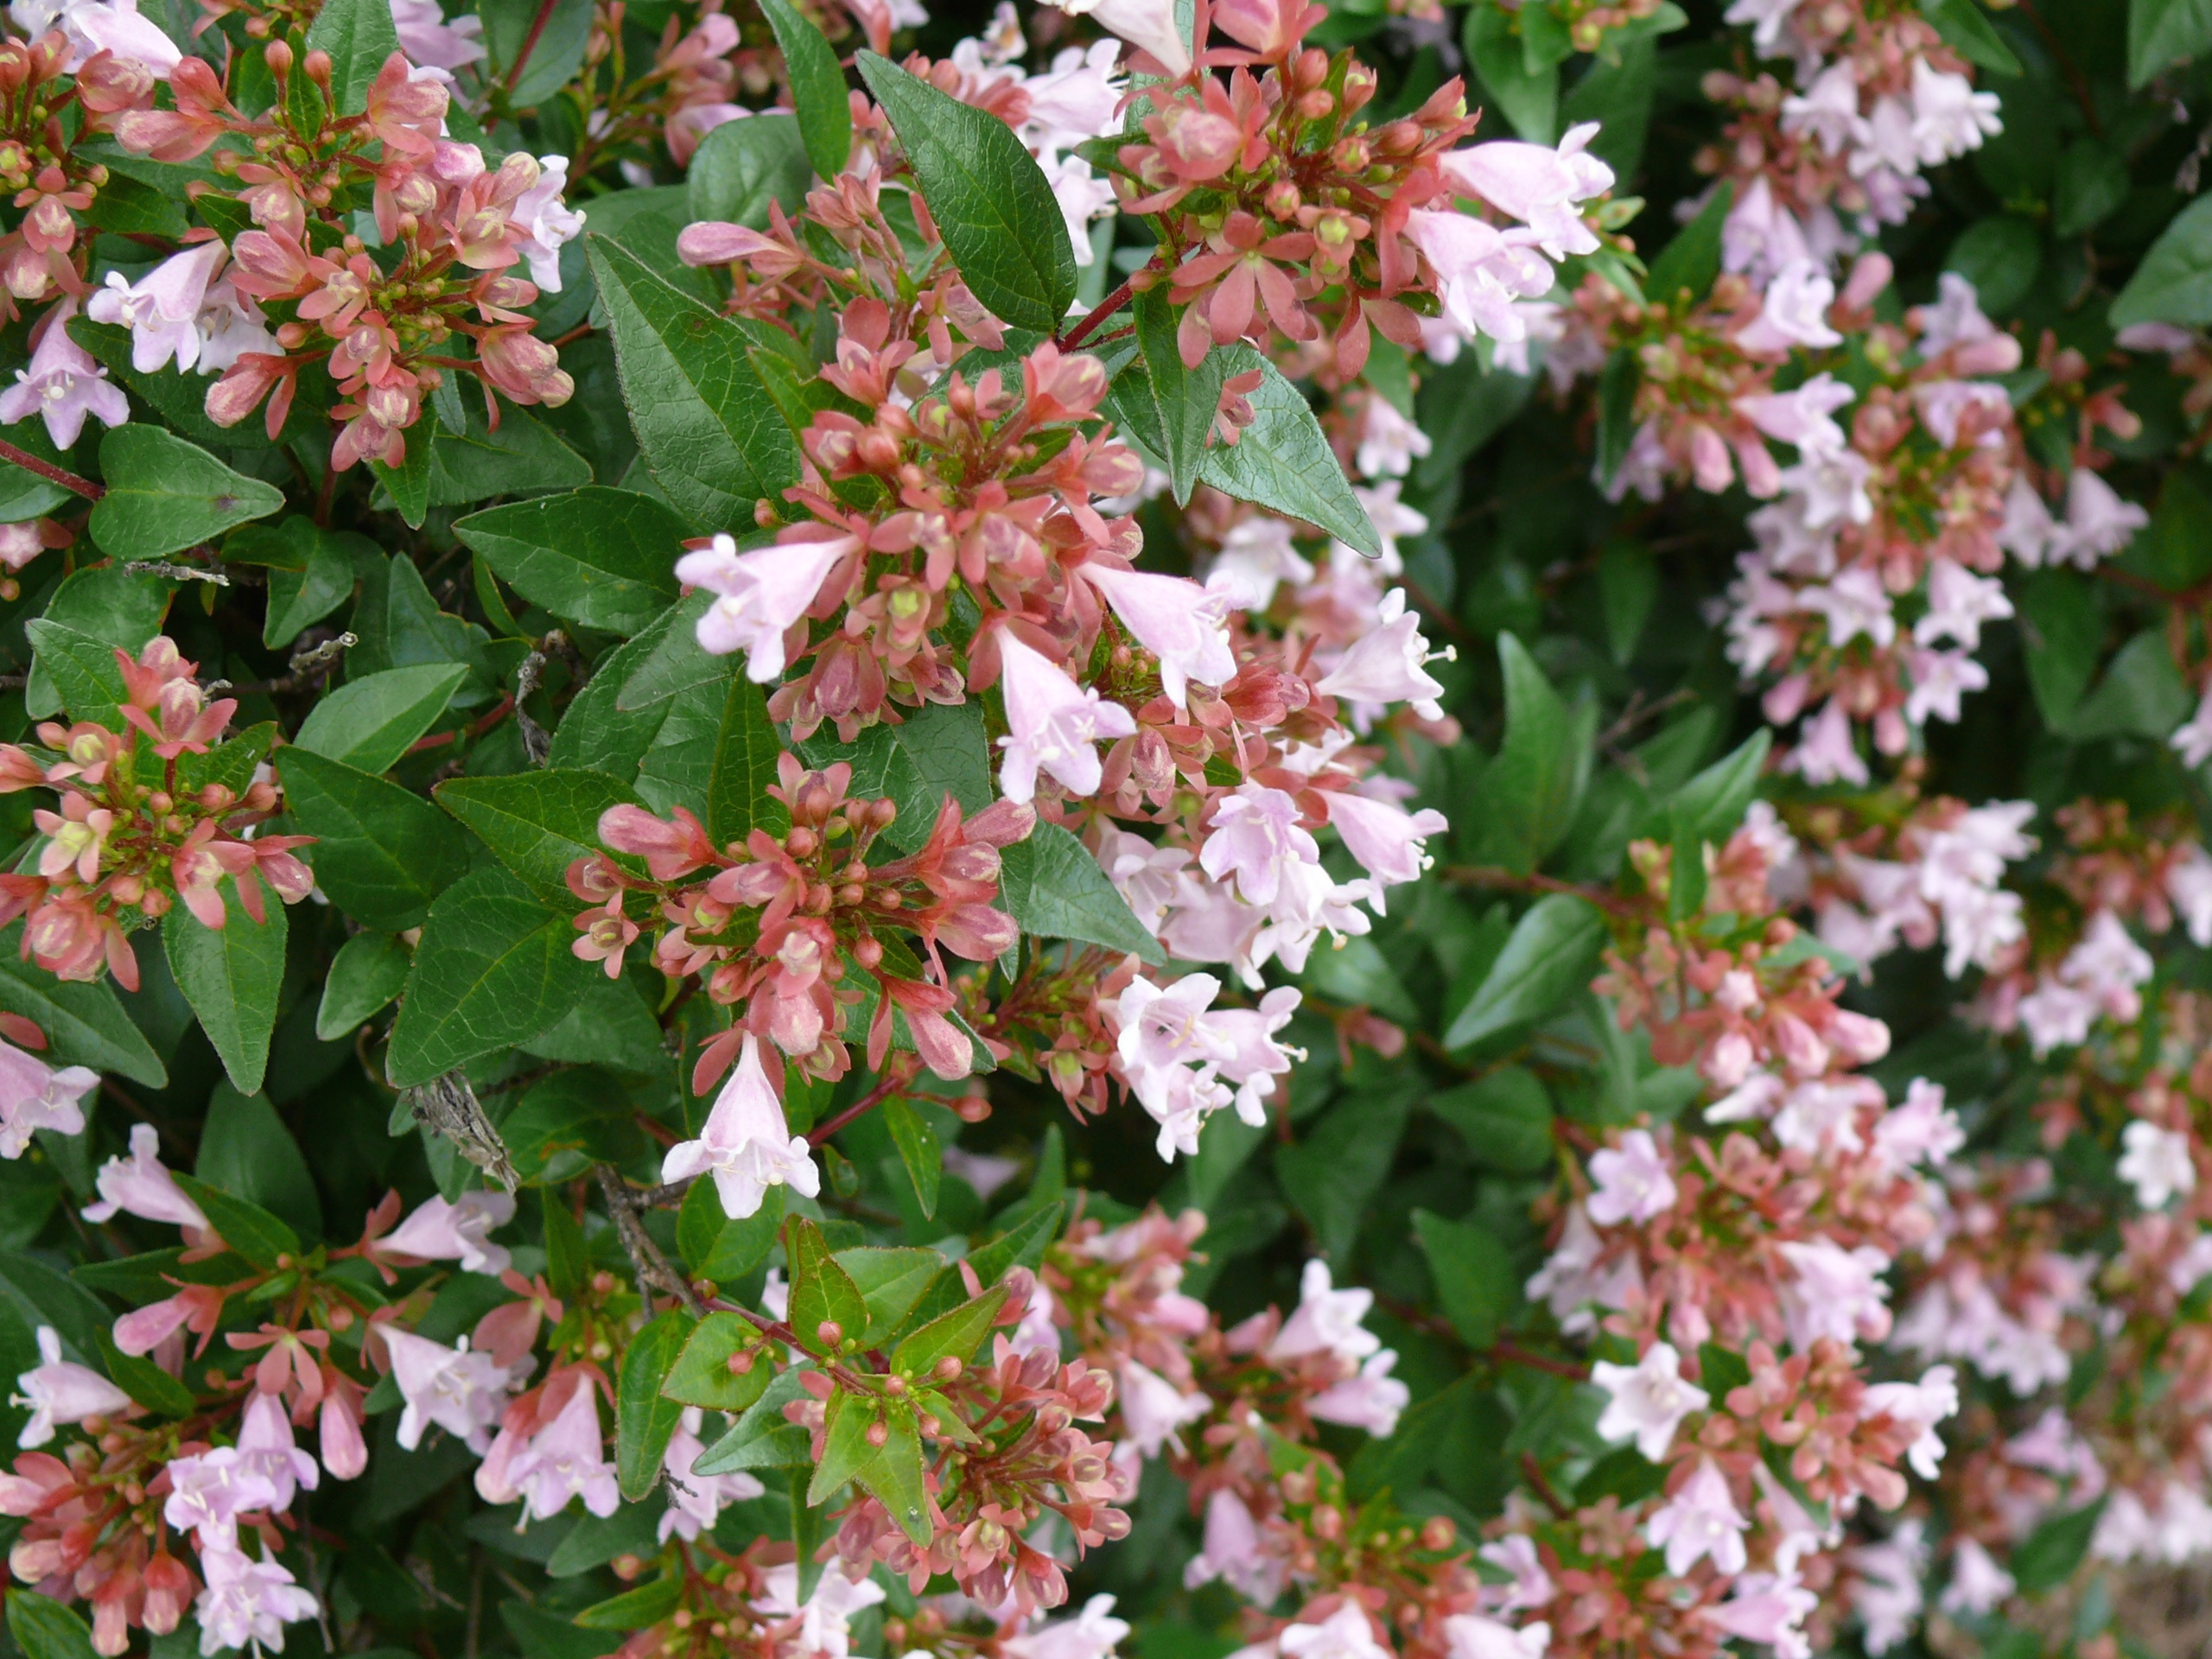 This abelia shrub is suitable for planting by a home's foundation because it can adapt to extreme conditions. Many plants cannot tolerate the high heat, compact soil and highly alkaline soil often found beside home foundations.